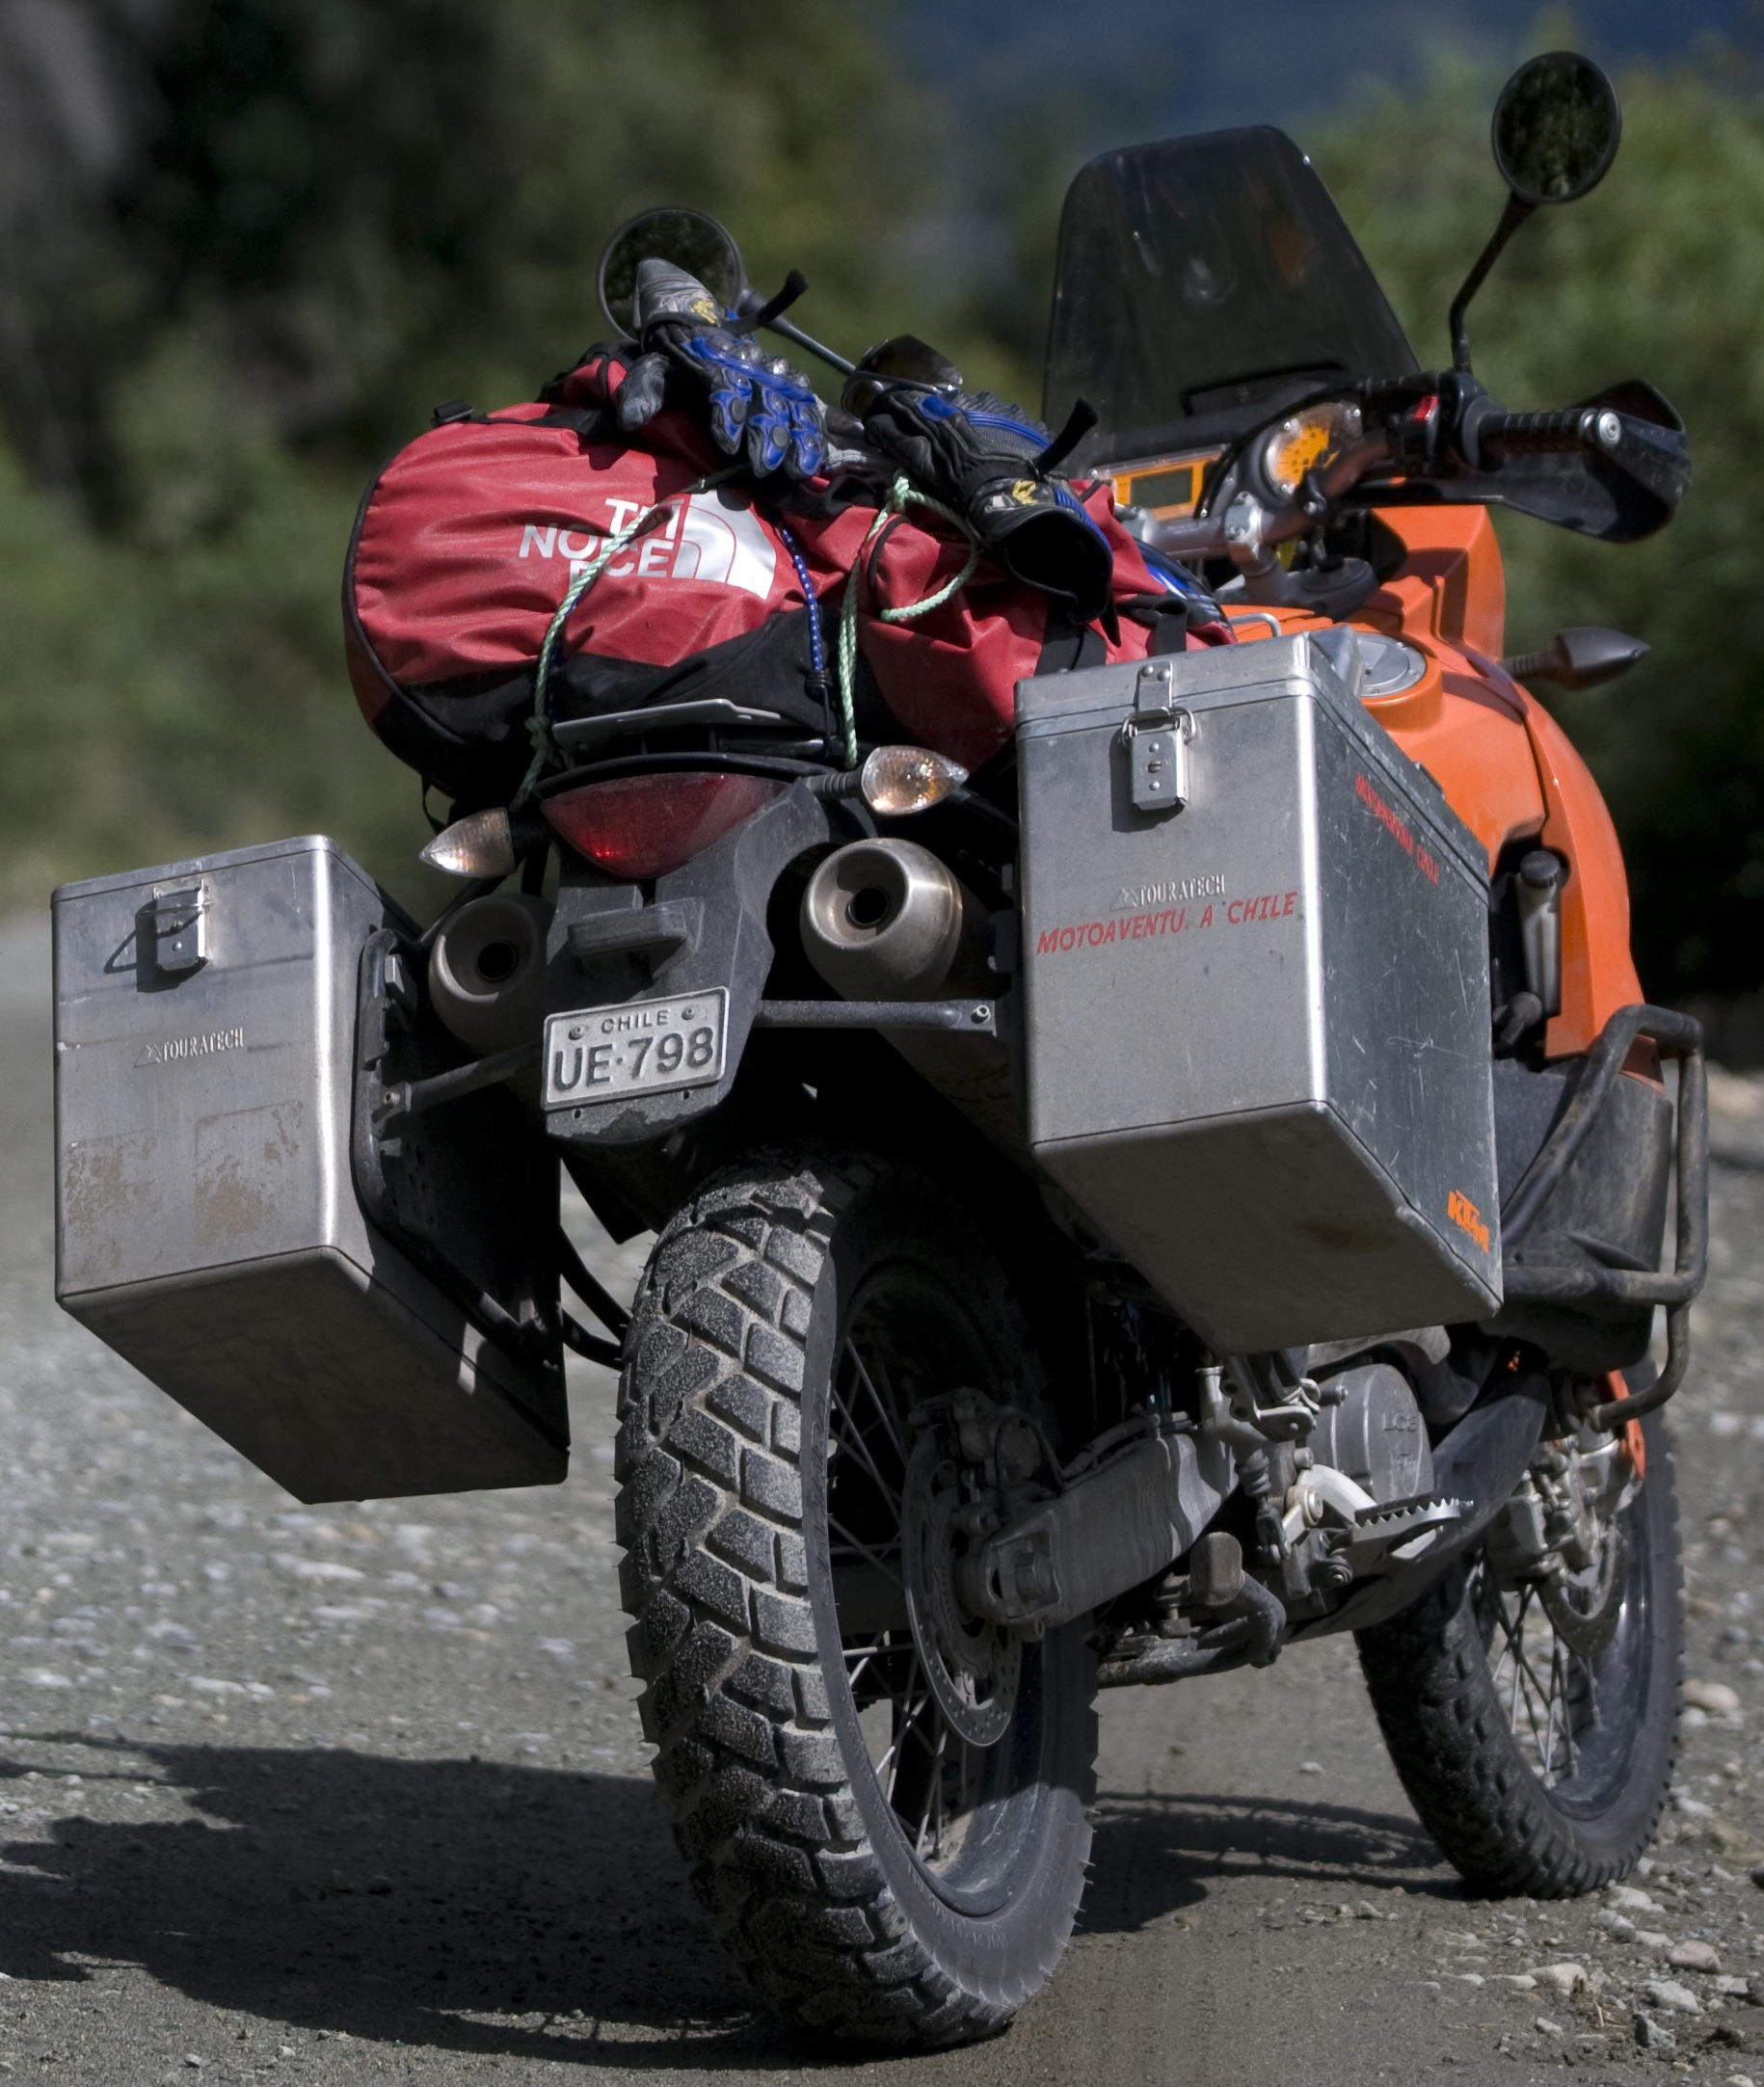 Soft Motorcycle Panniers Review